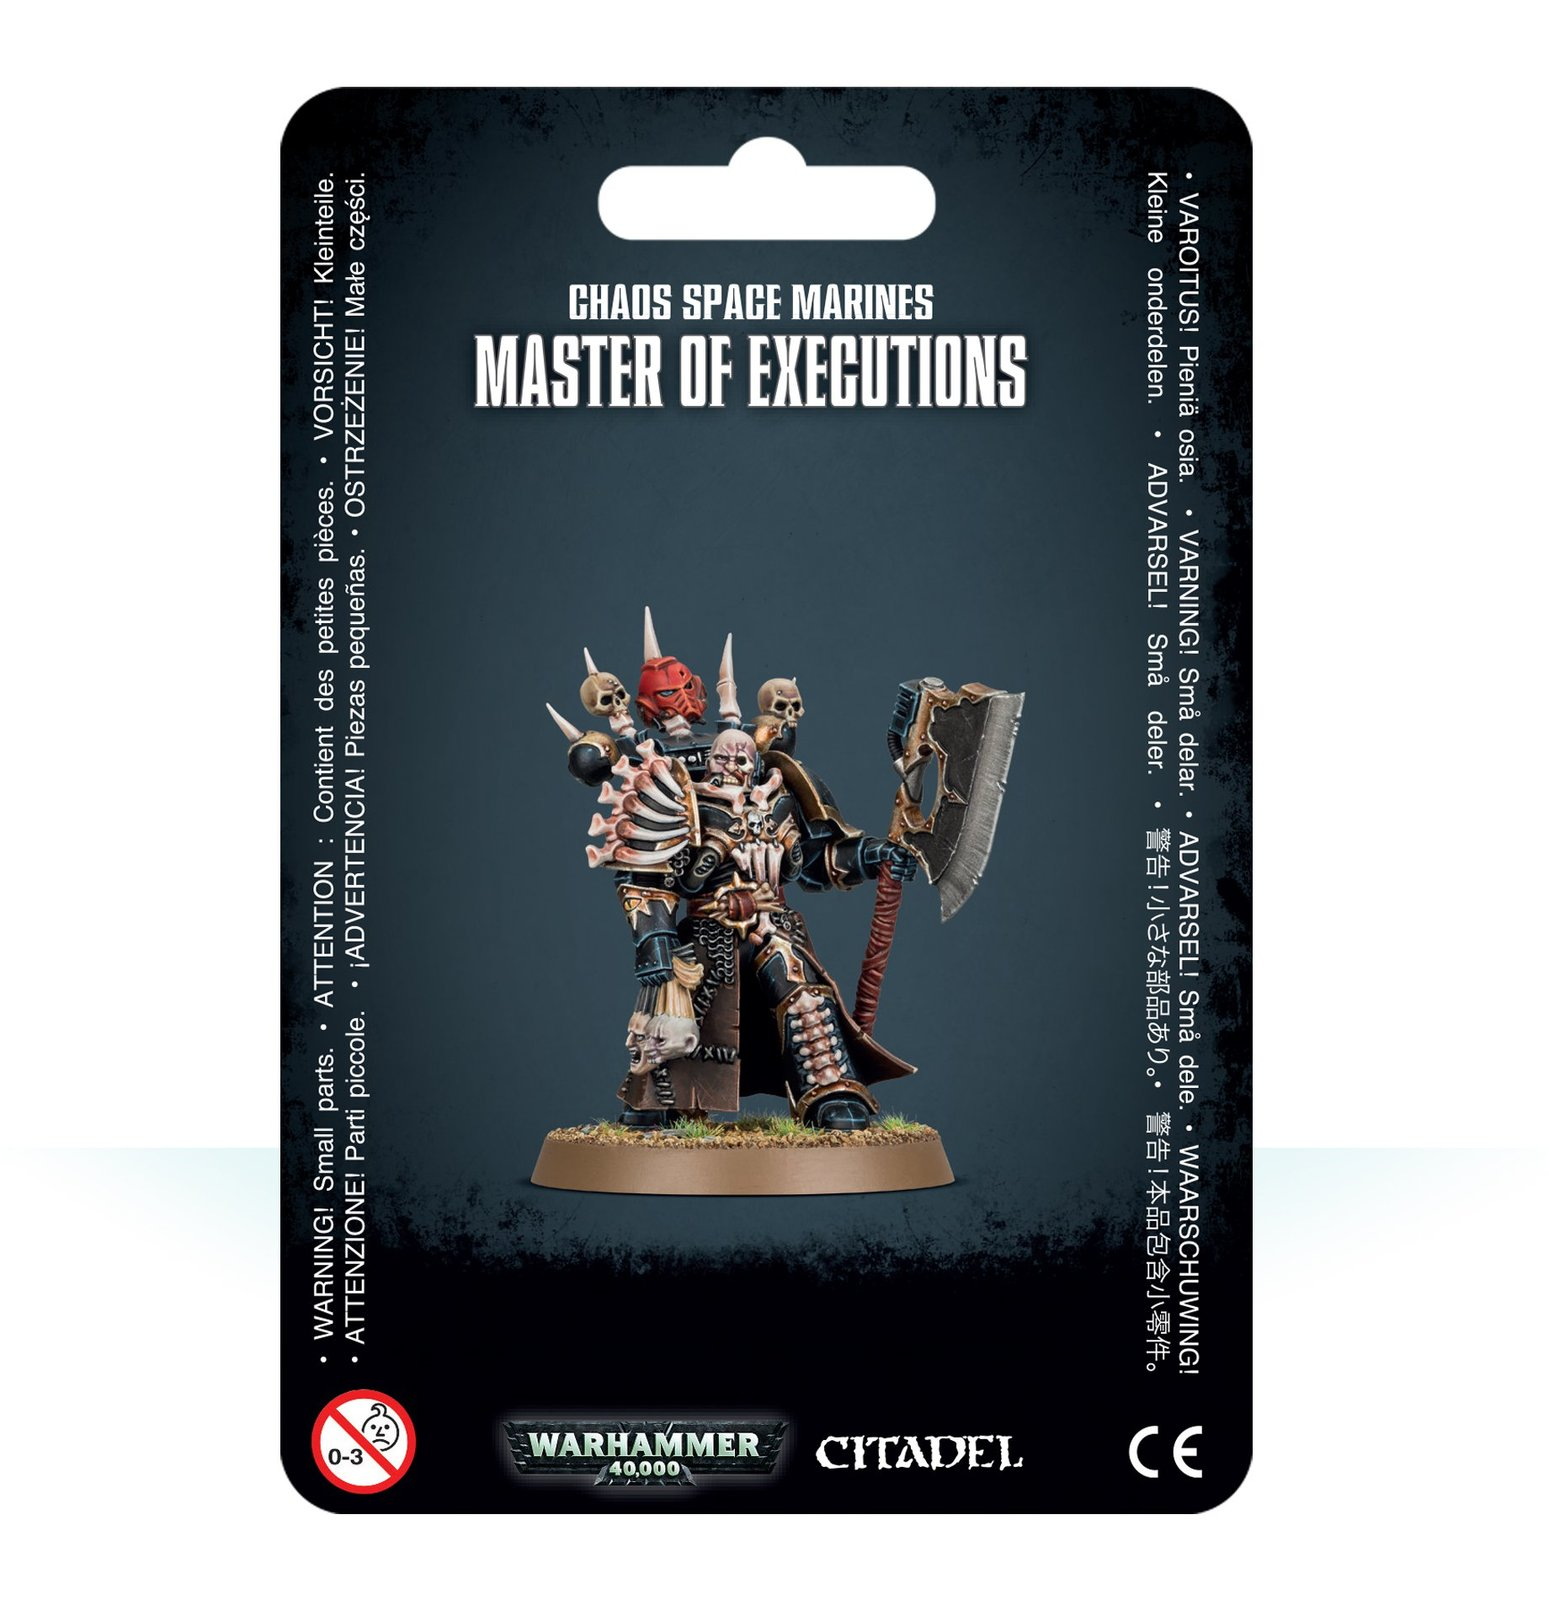 Warhammer 40,000: Chaos Space Marines - Master of Executions image